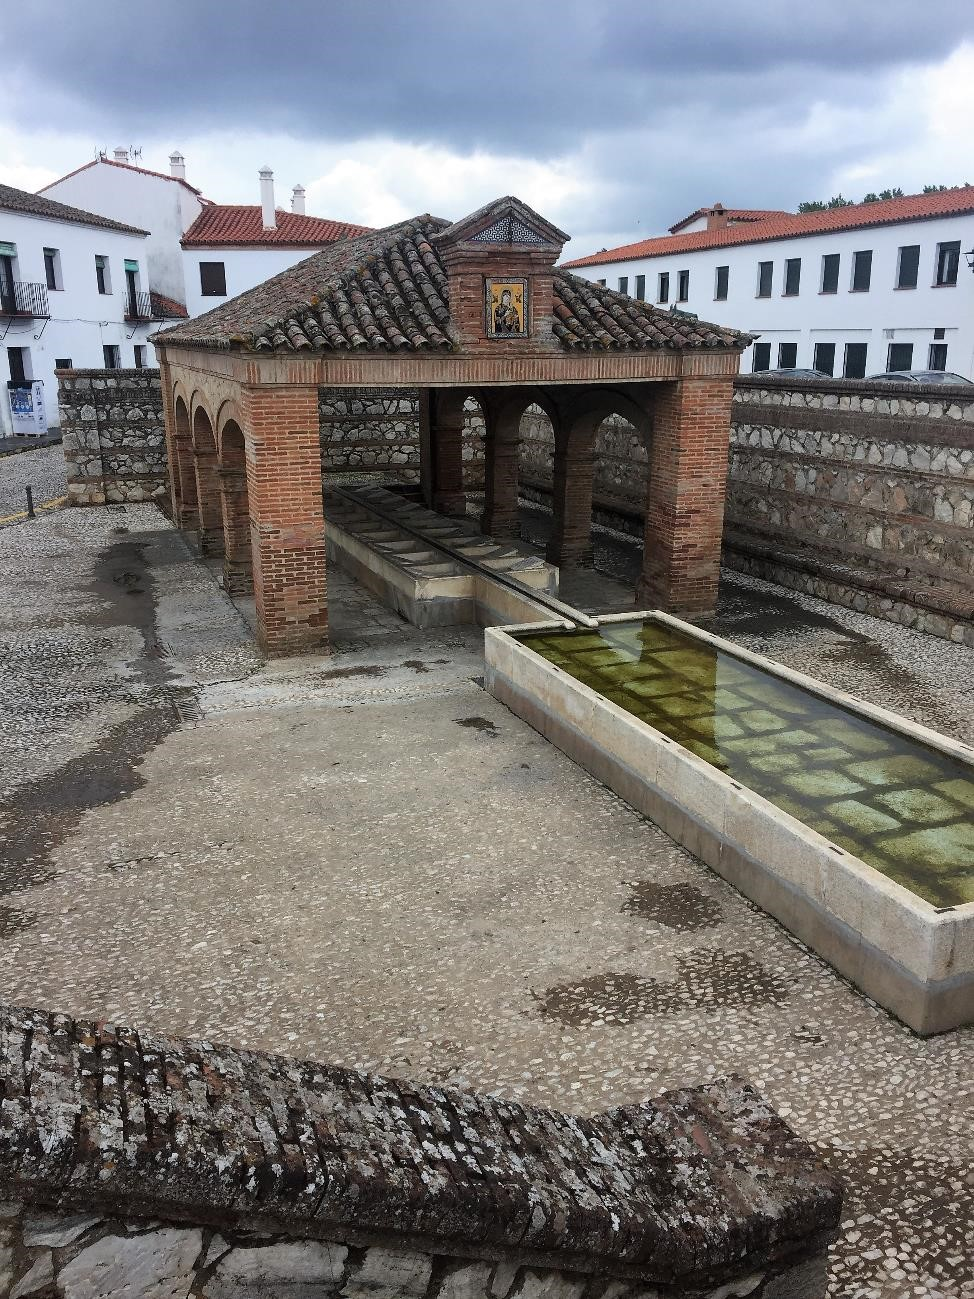 One of my favorite features of Aracena, as well as the small town where we studied jamon, were the laundry houses full of stone washboards. Laundry is one of my least favorite things, but I was so charmed by these public spaces that would have brought a whole town together.